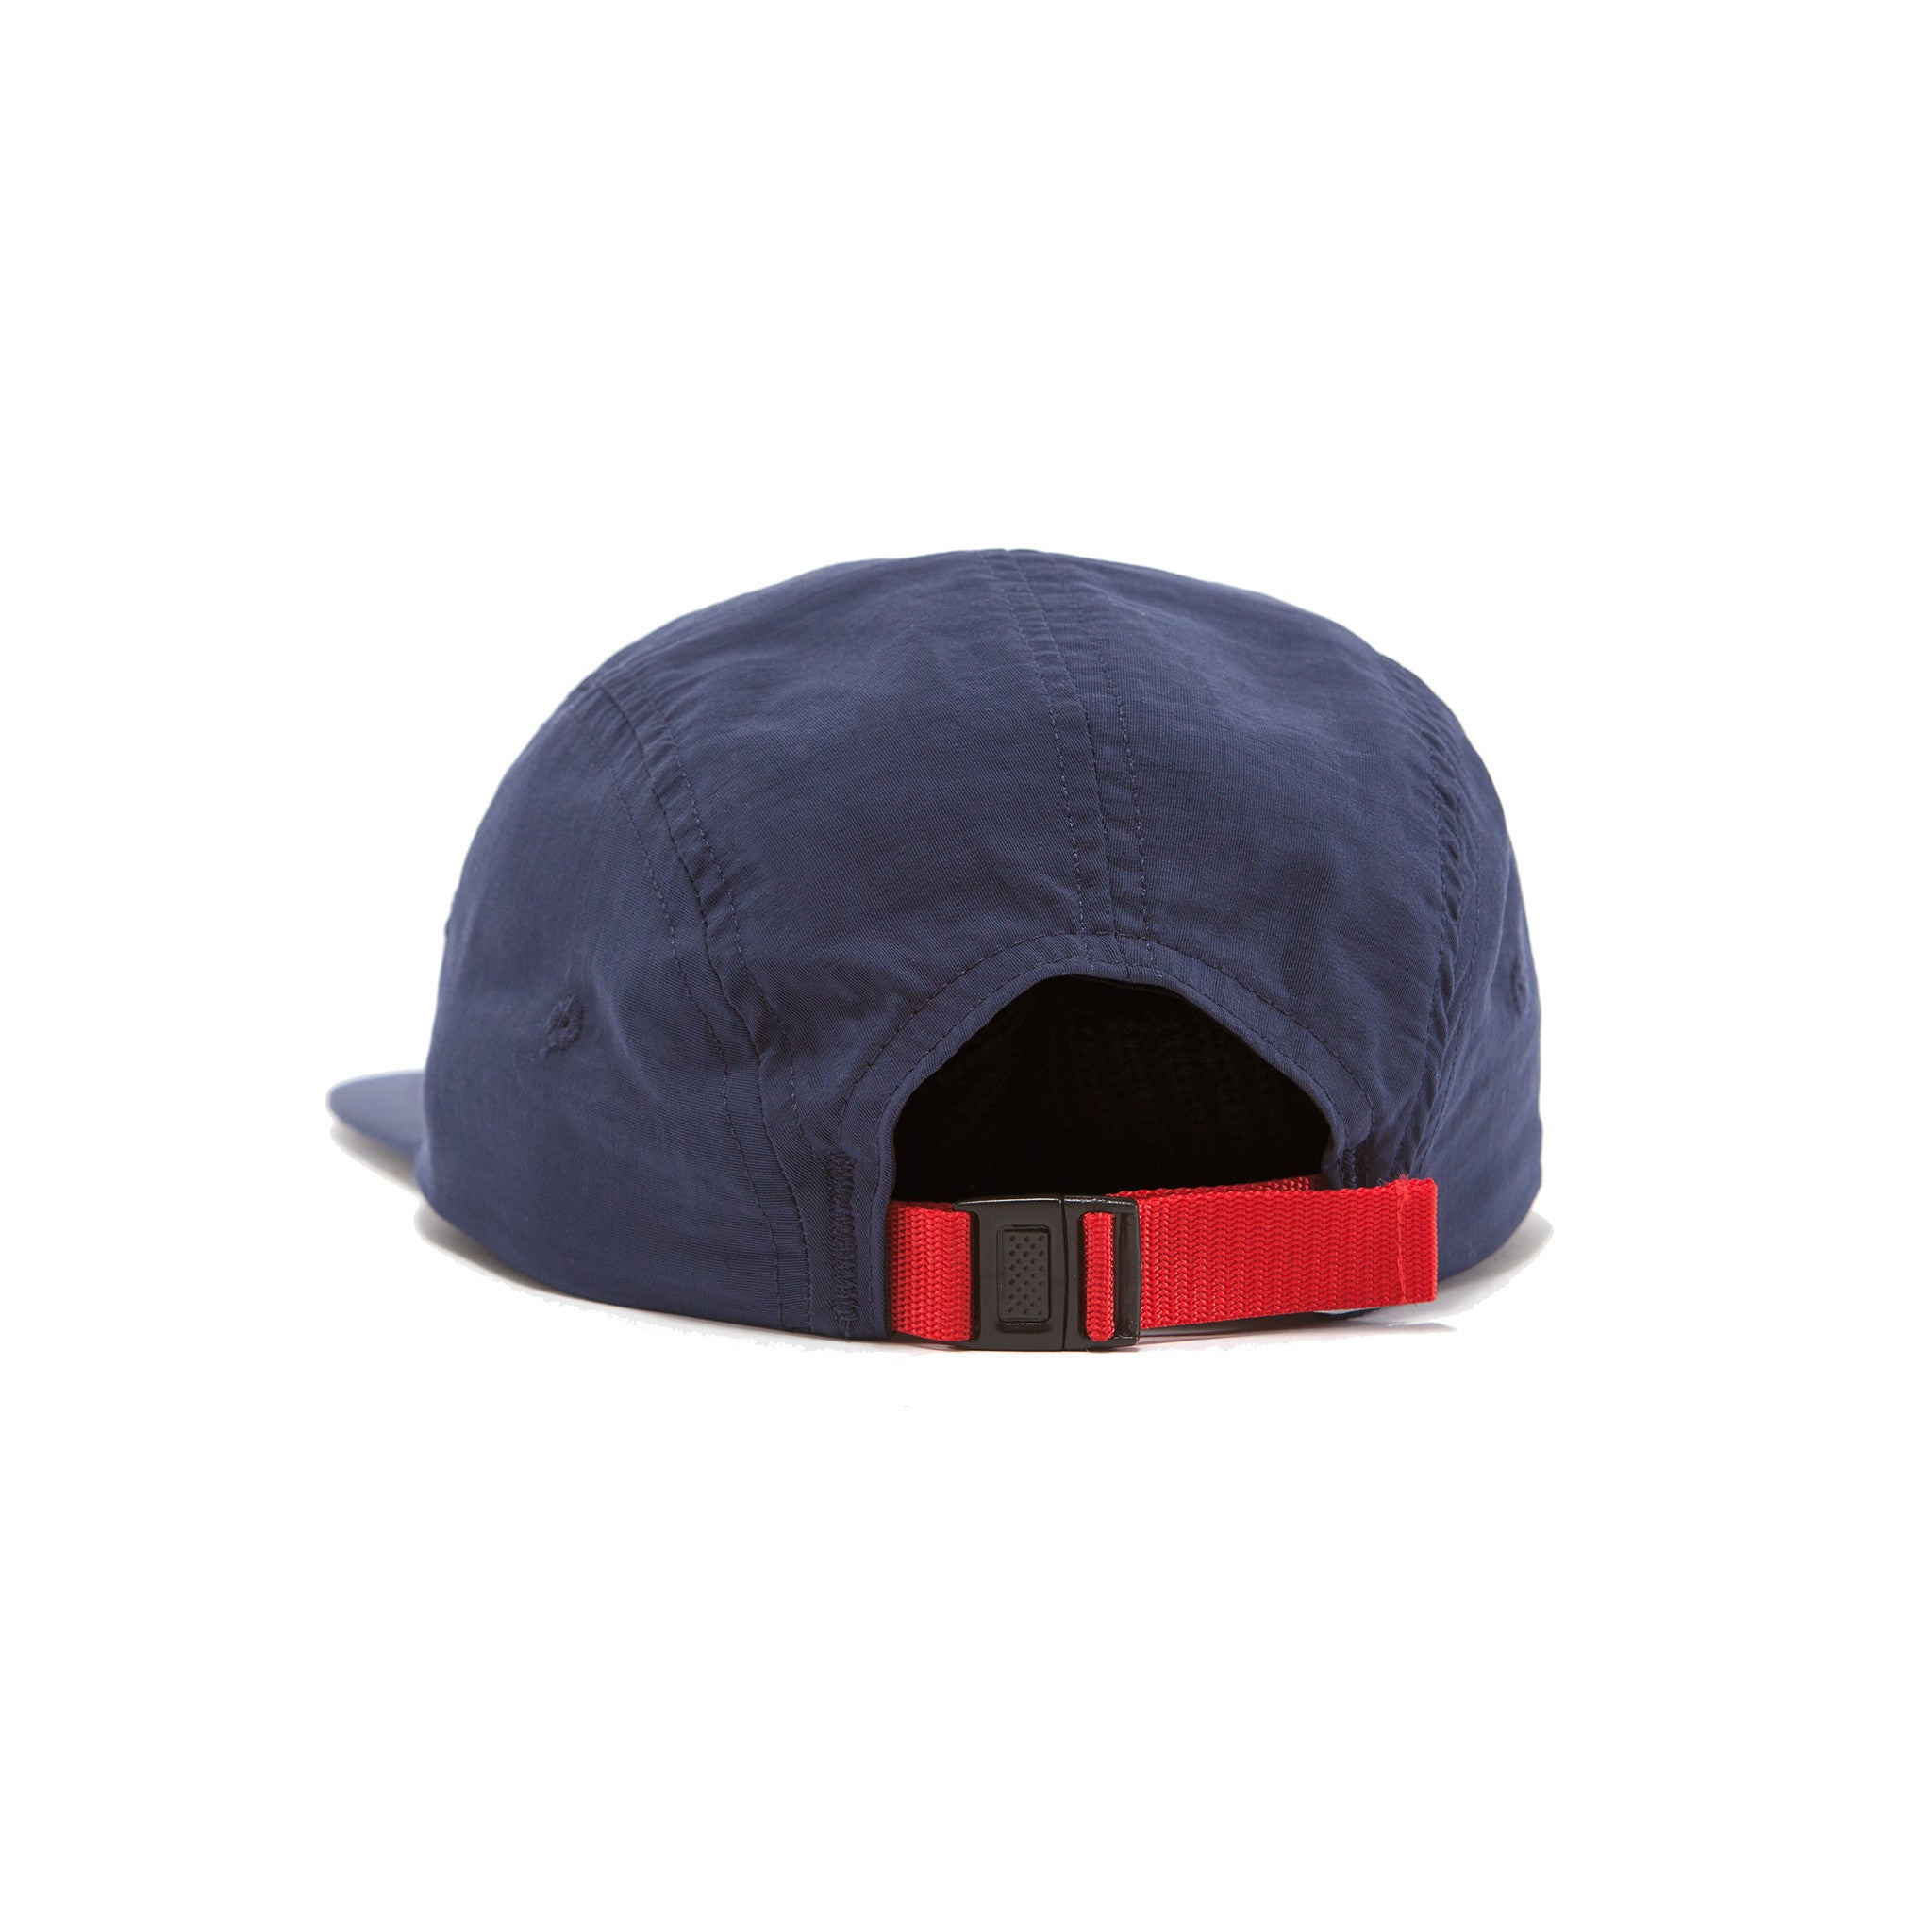 Accessories - Nylon Camp Hat 2e20154daa3